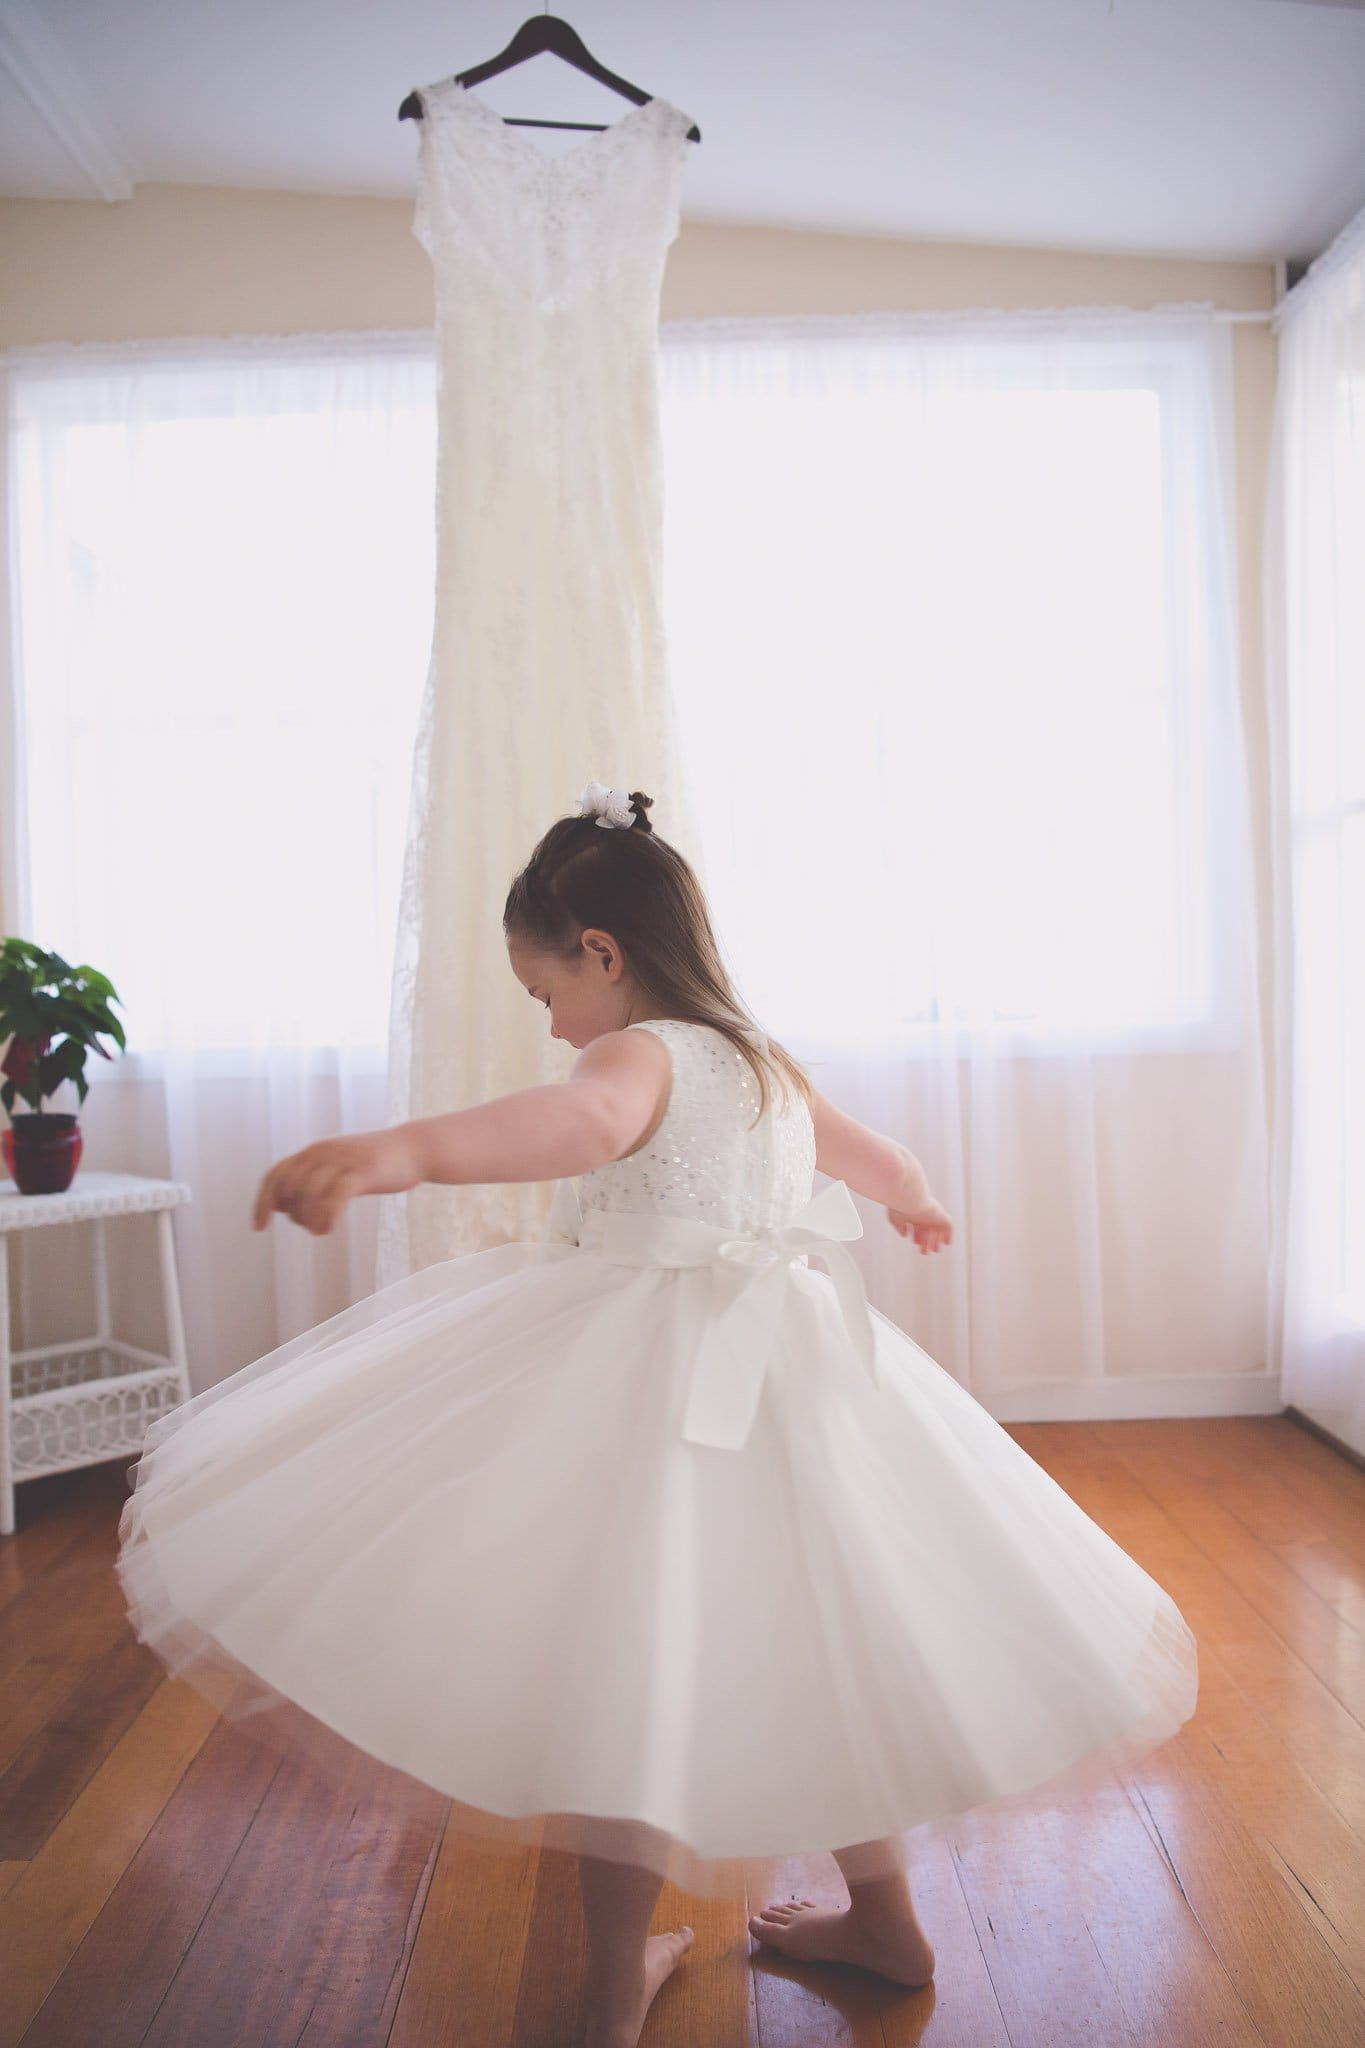 Melbourne wedding photography of a flower girl dancing in front of a wedding dress